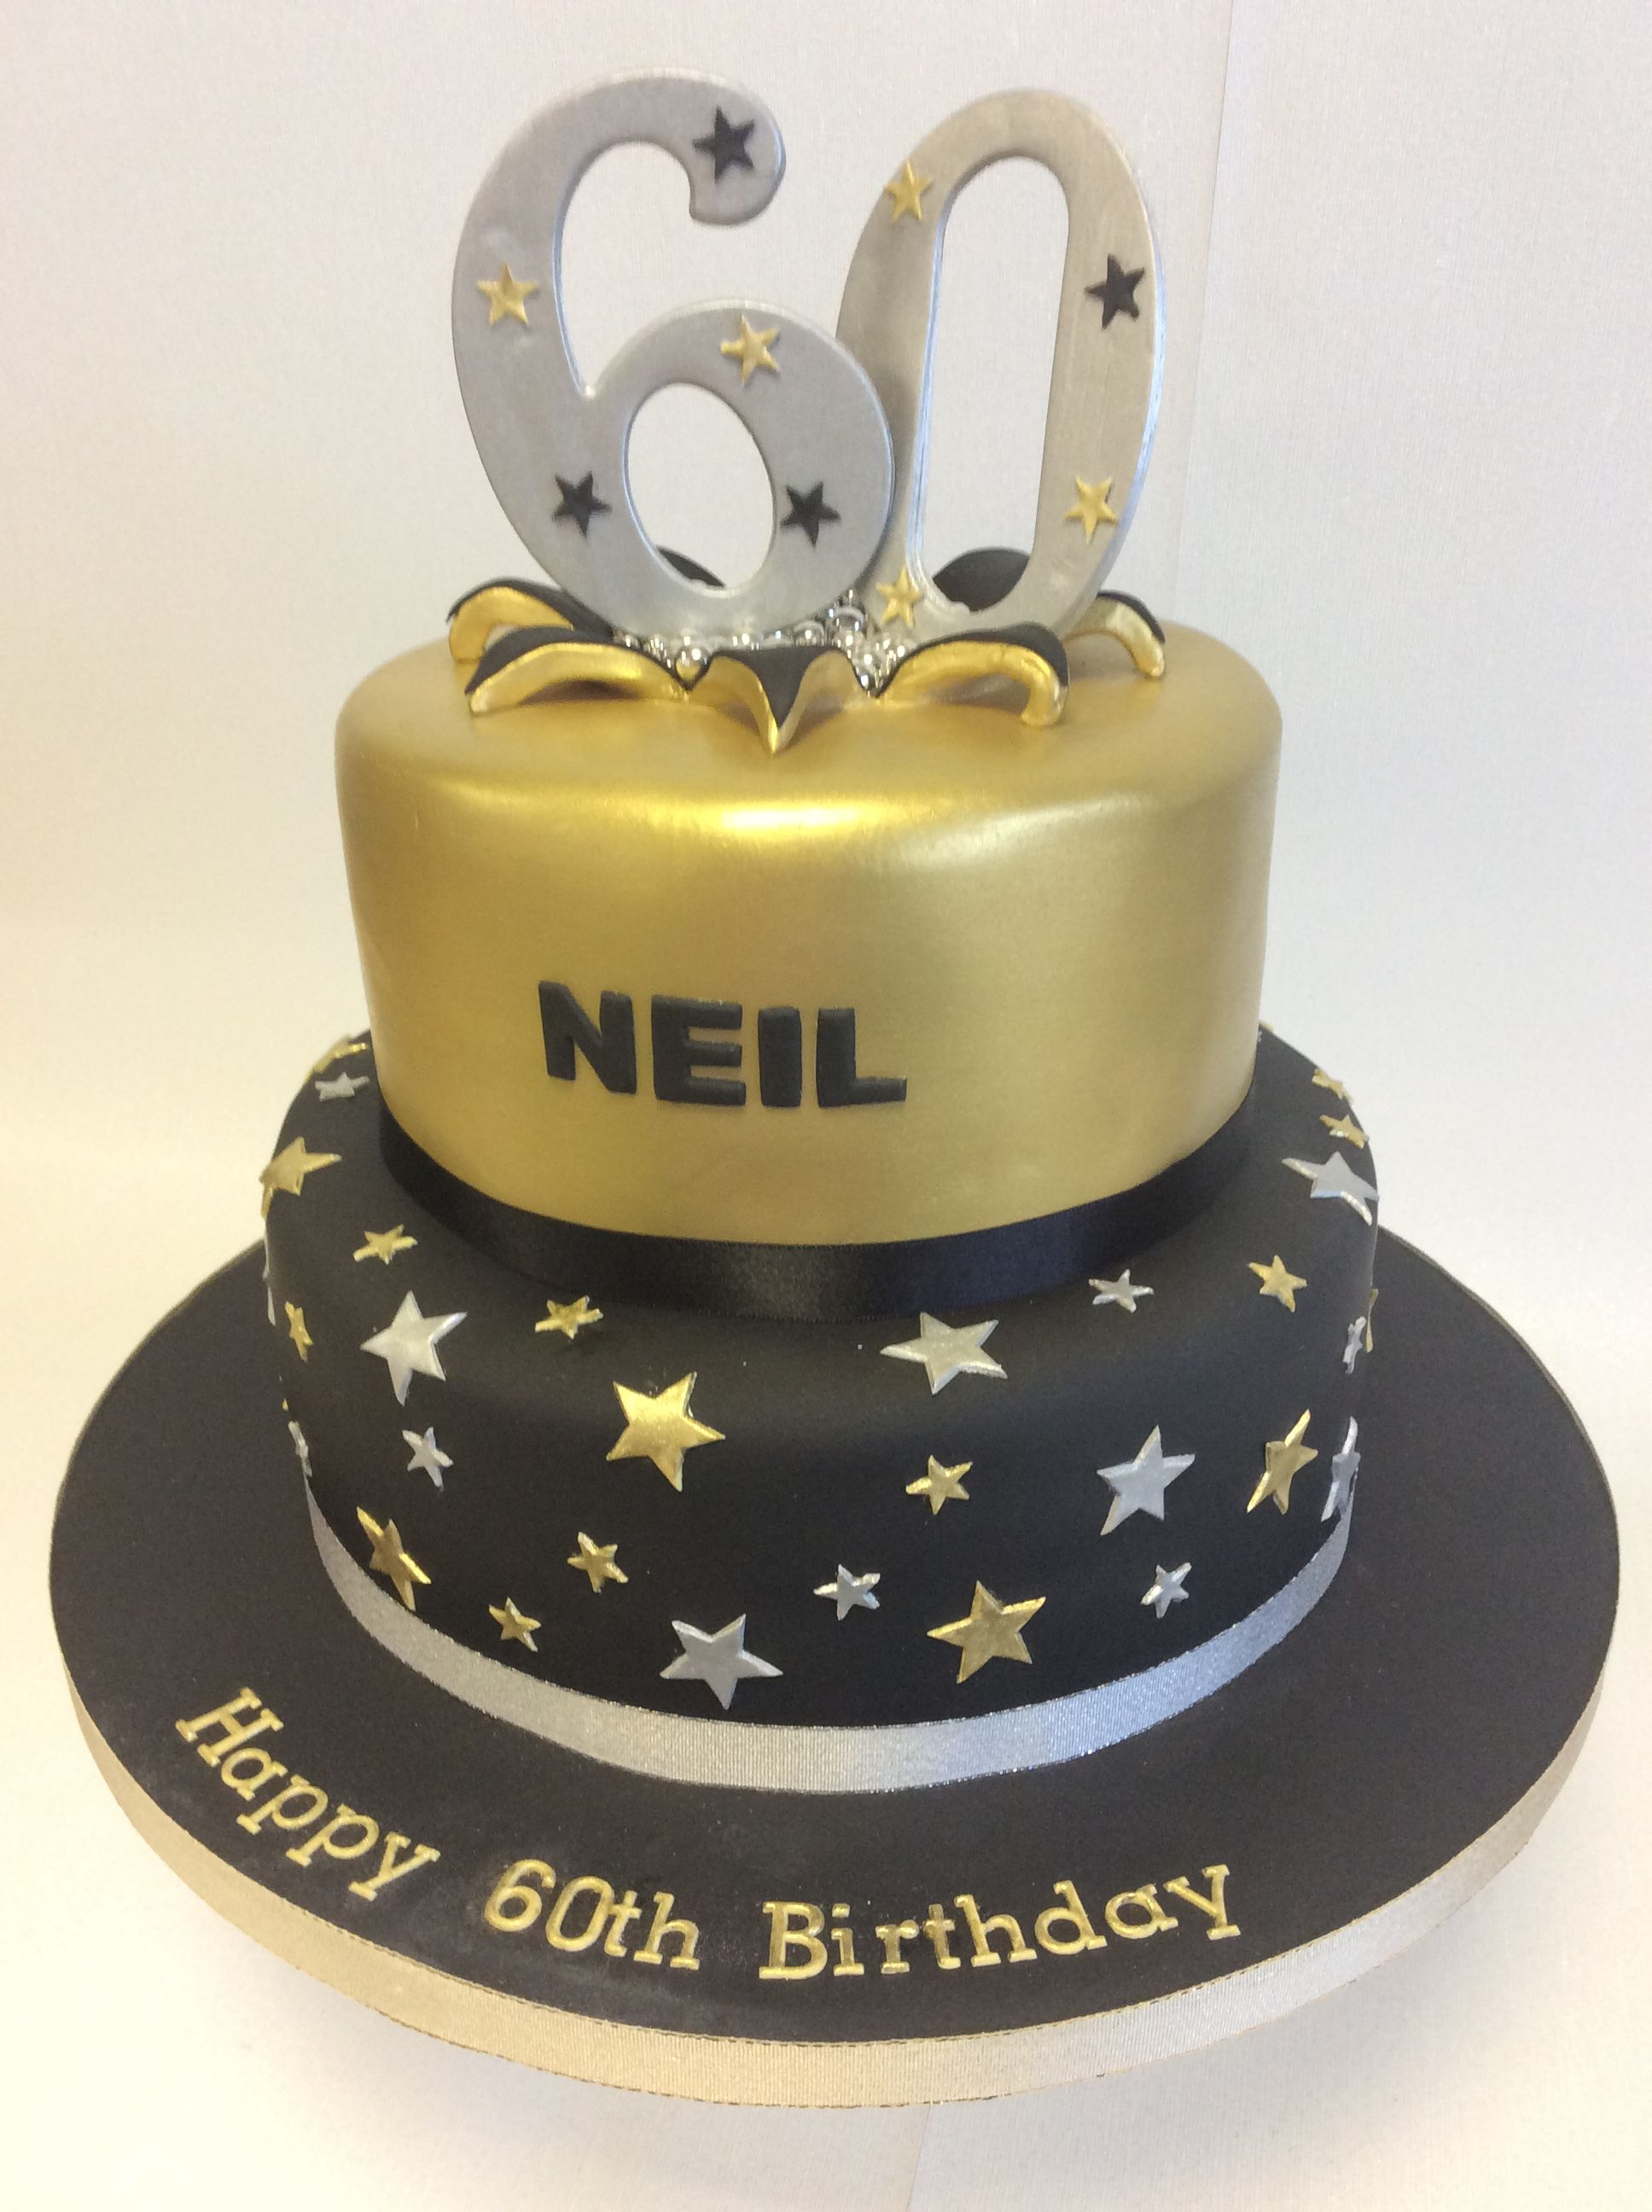 2 Tier Black Gold Theme 60th Birthday Cake Black And Gold